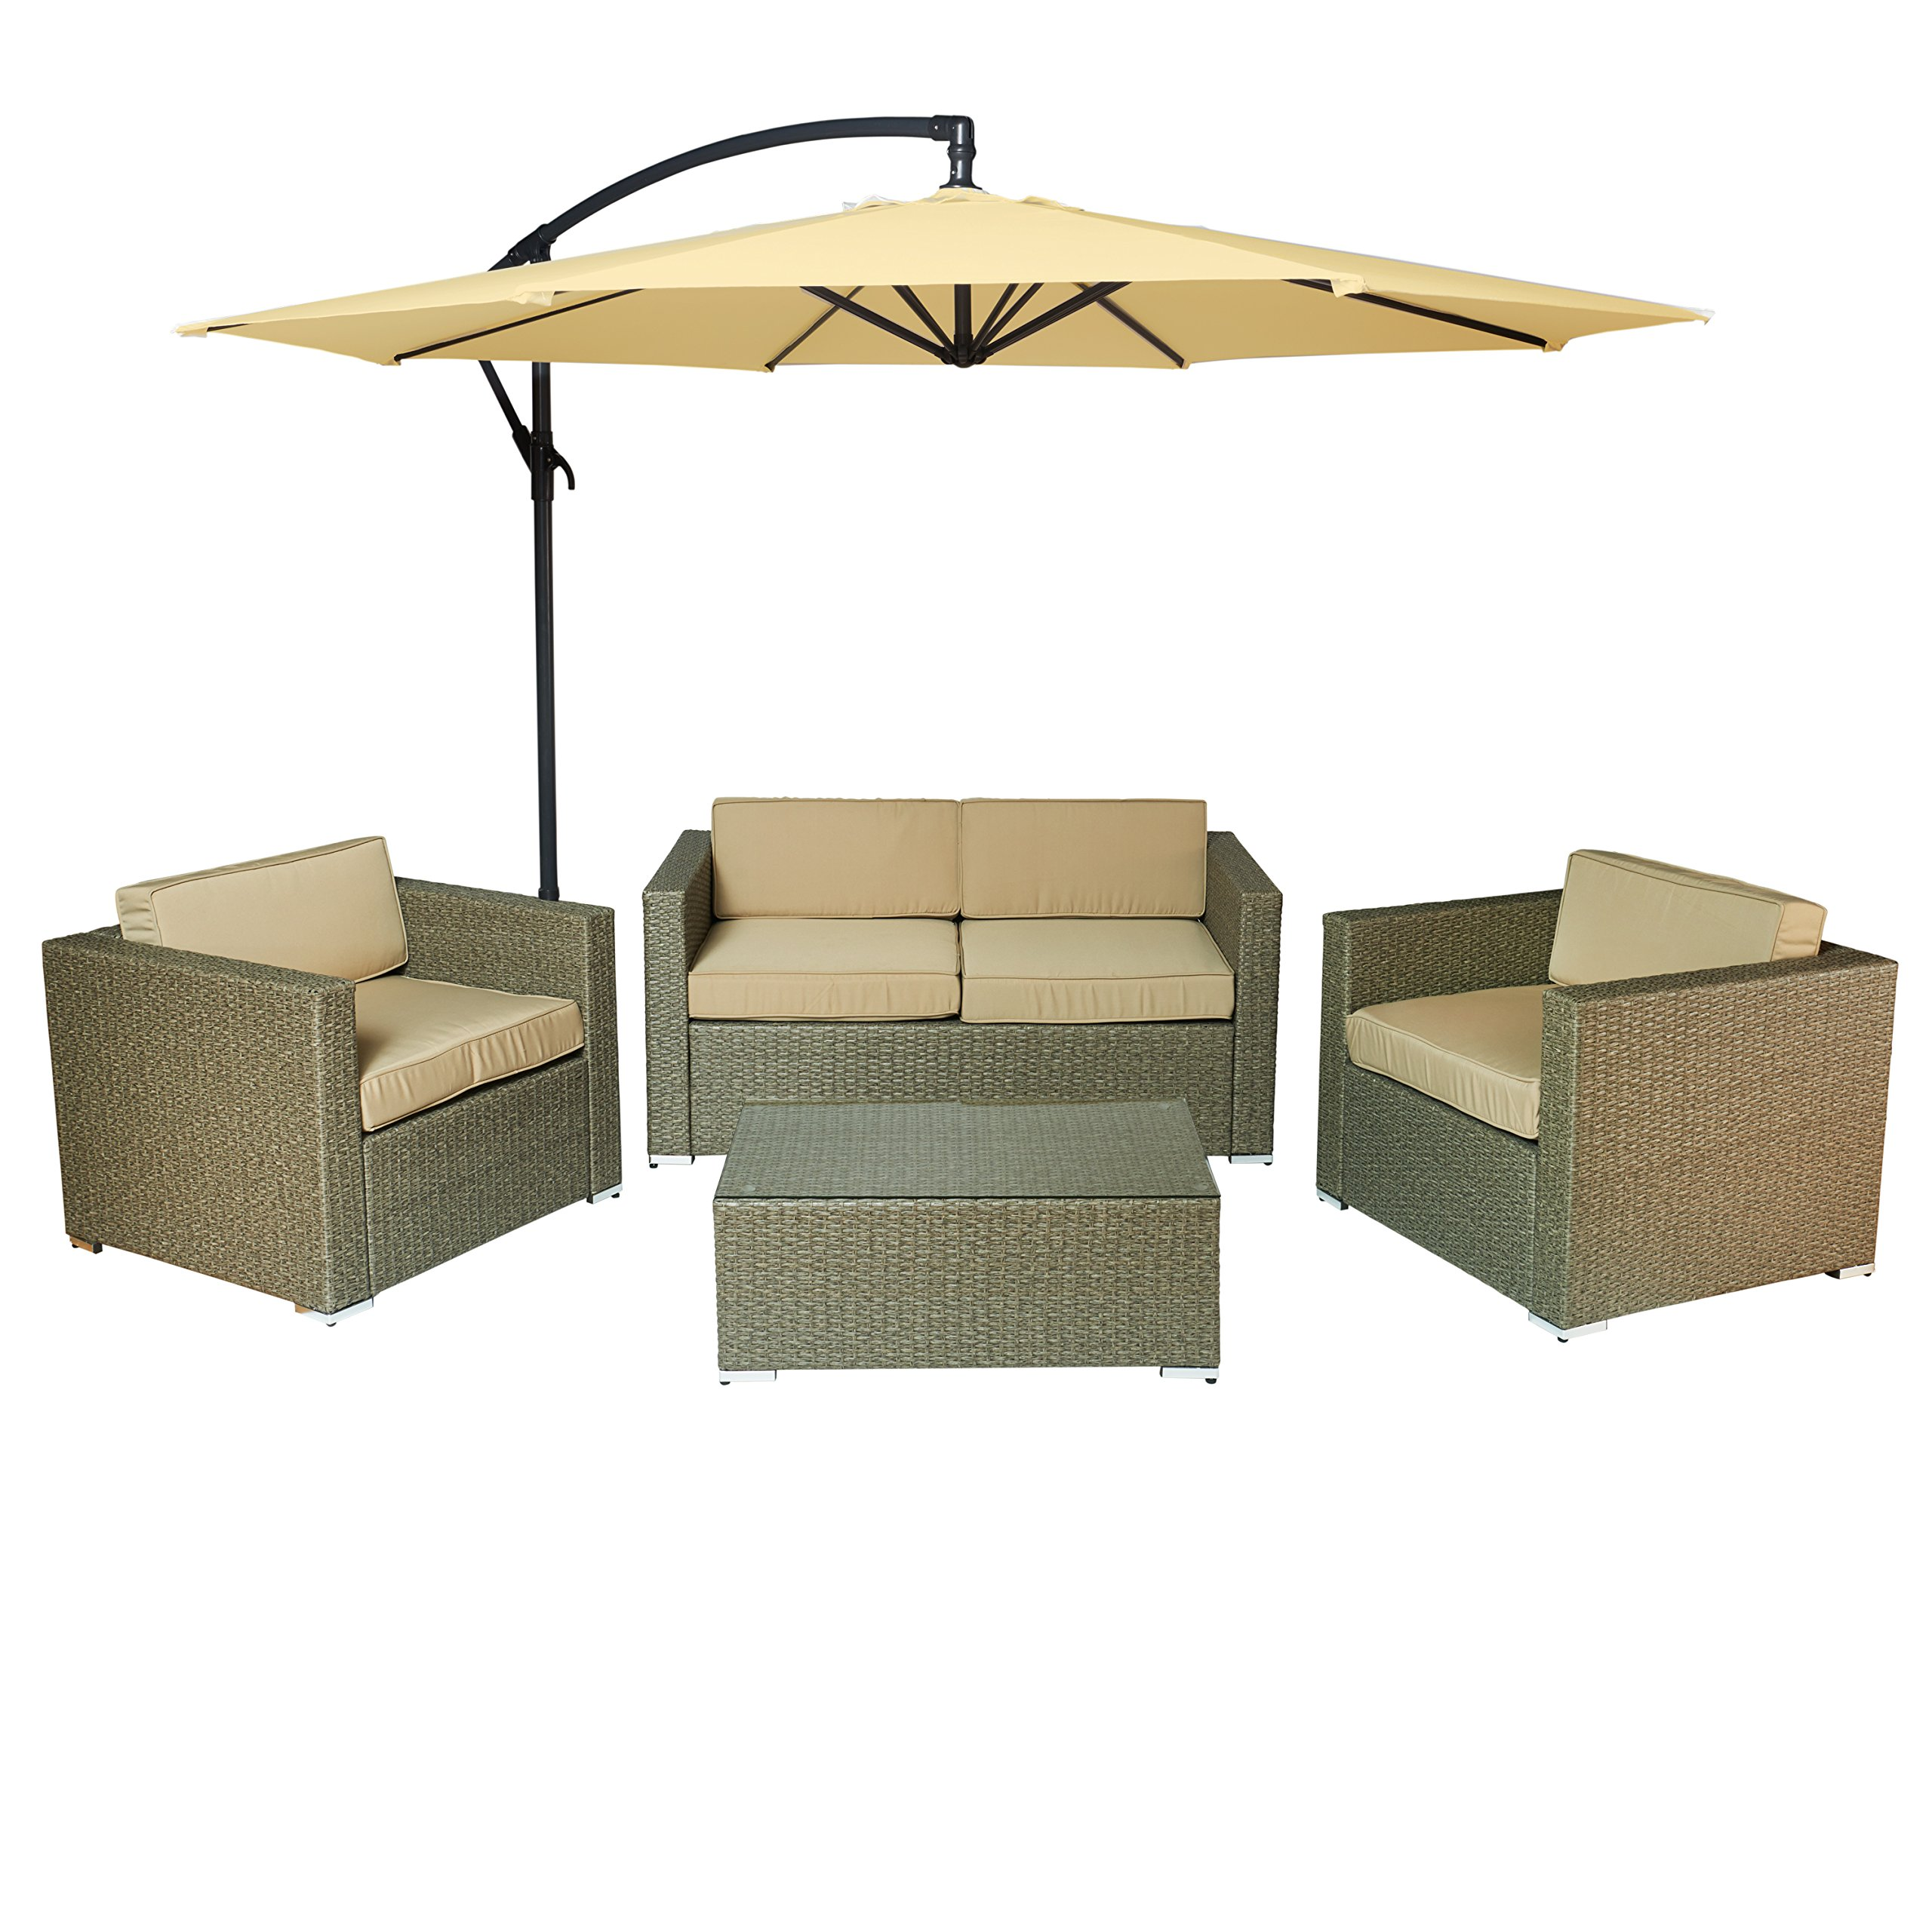 Carabelle Outdoor Wicker Patio 5 Piece Conversation Set with Seat Cushions and Umbrella, Rustic Light Brown and Beige by Carabelle